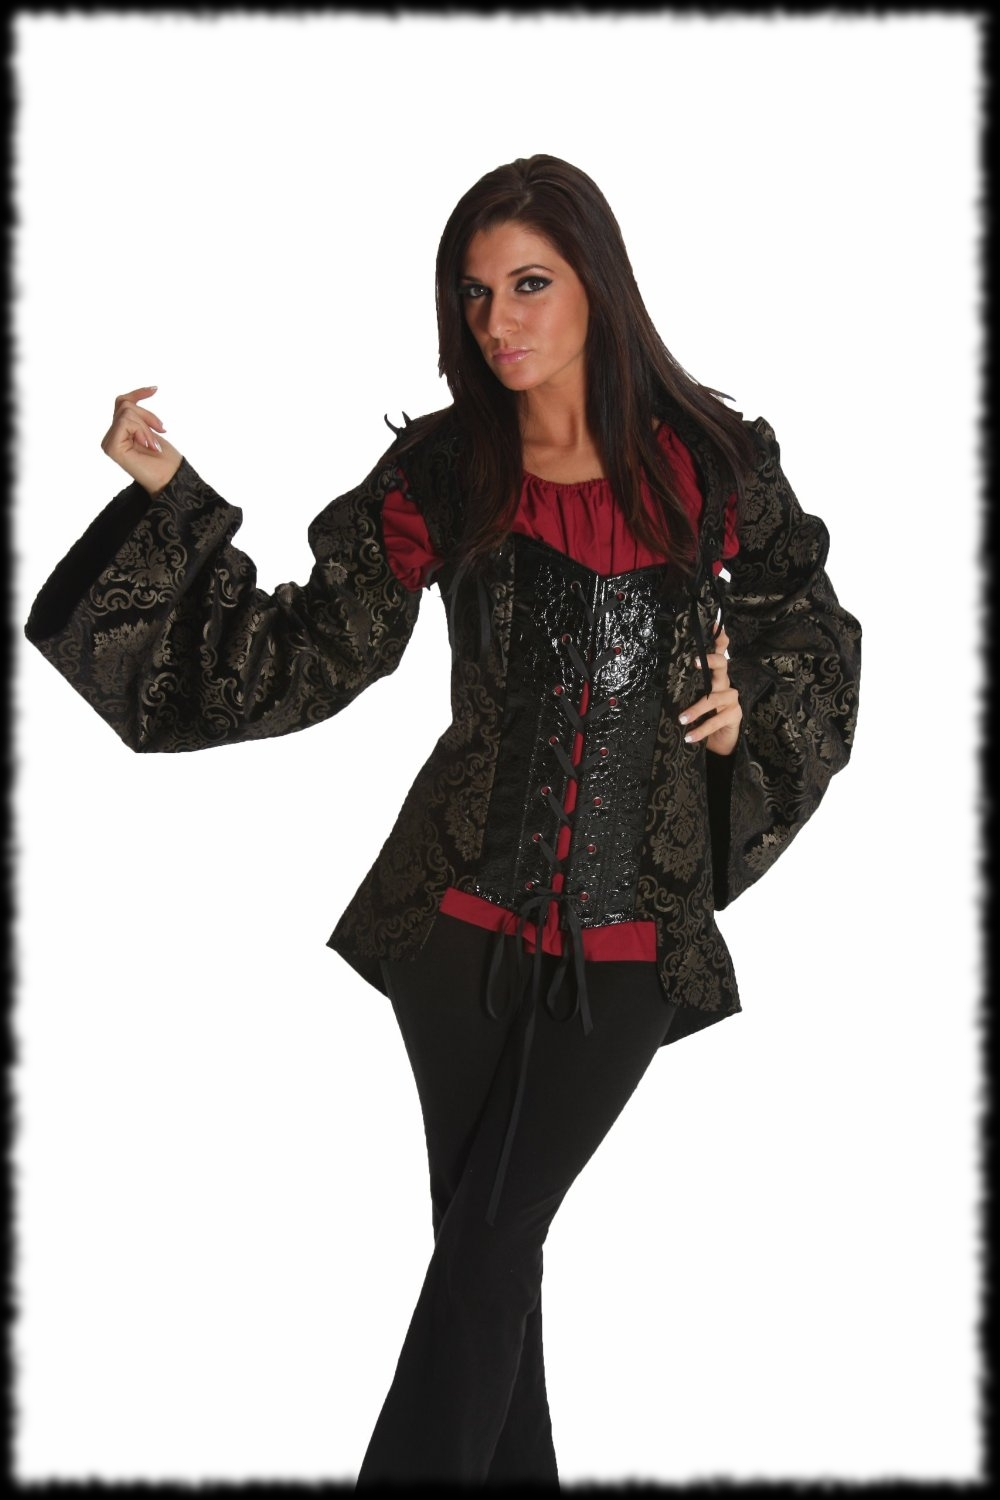 Lady's Deluxe Pirate Halloween Costume Top with Sleaves